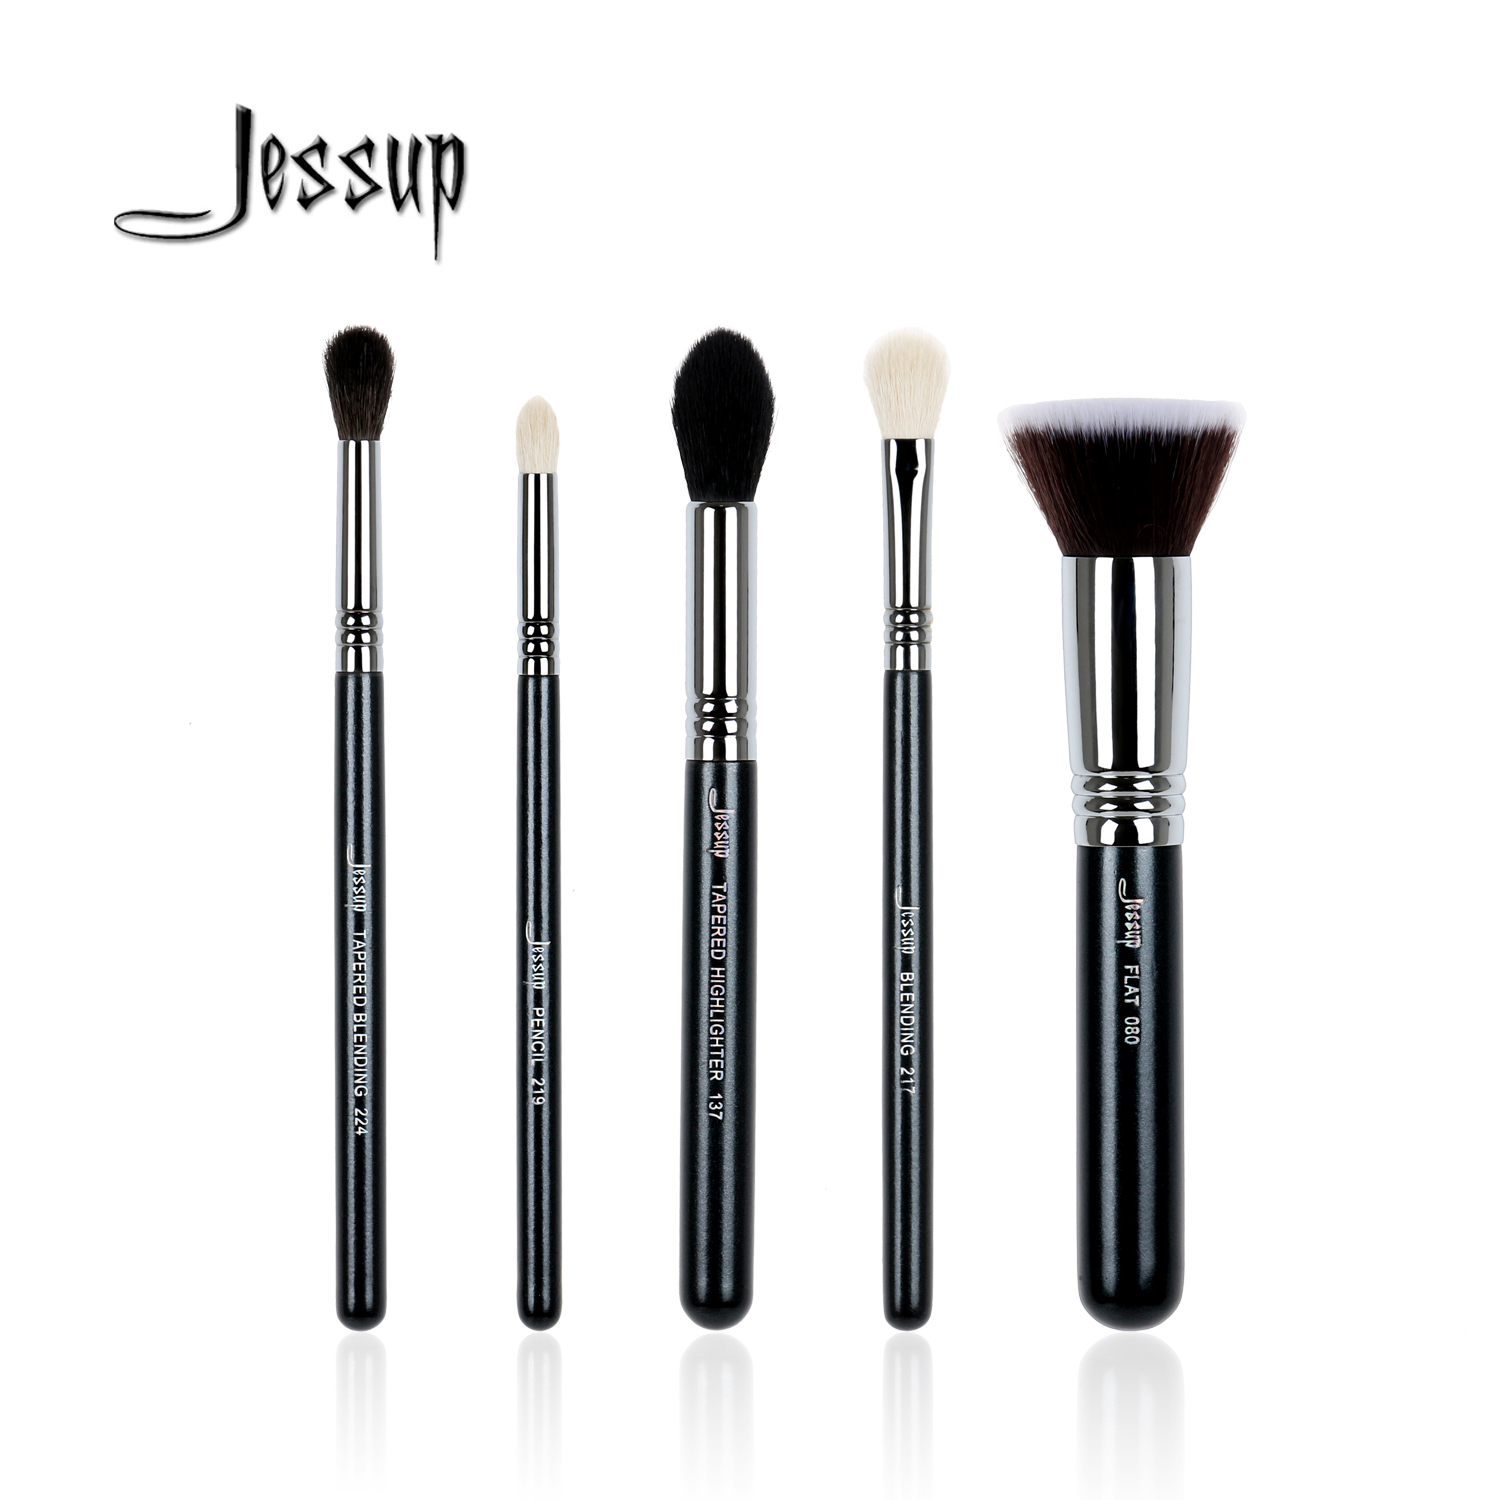 Jessup 5Pcs High Quality Pro Makeup Brush Set Foundation Blend Contour Eye shadow Highlighter Make up